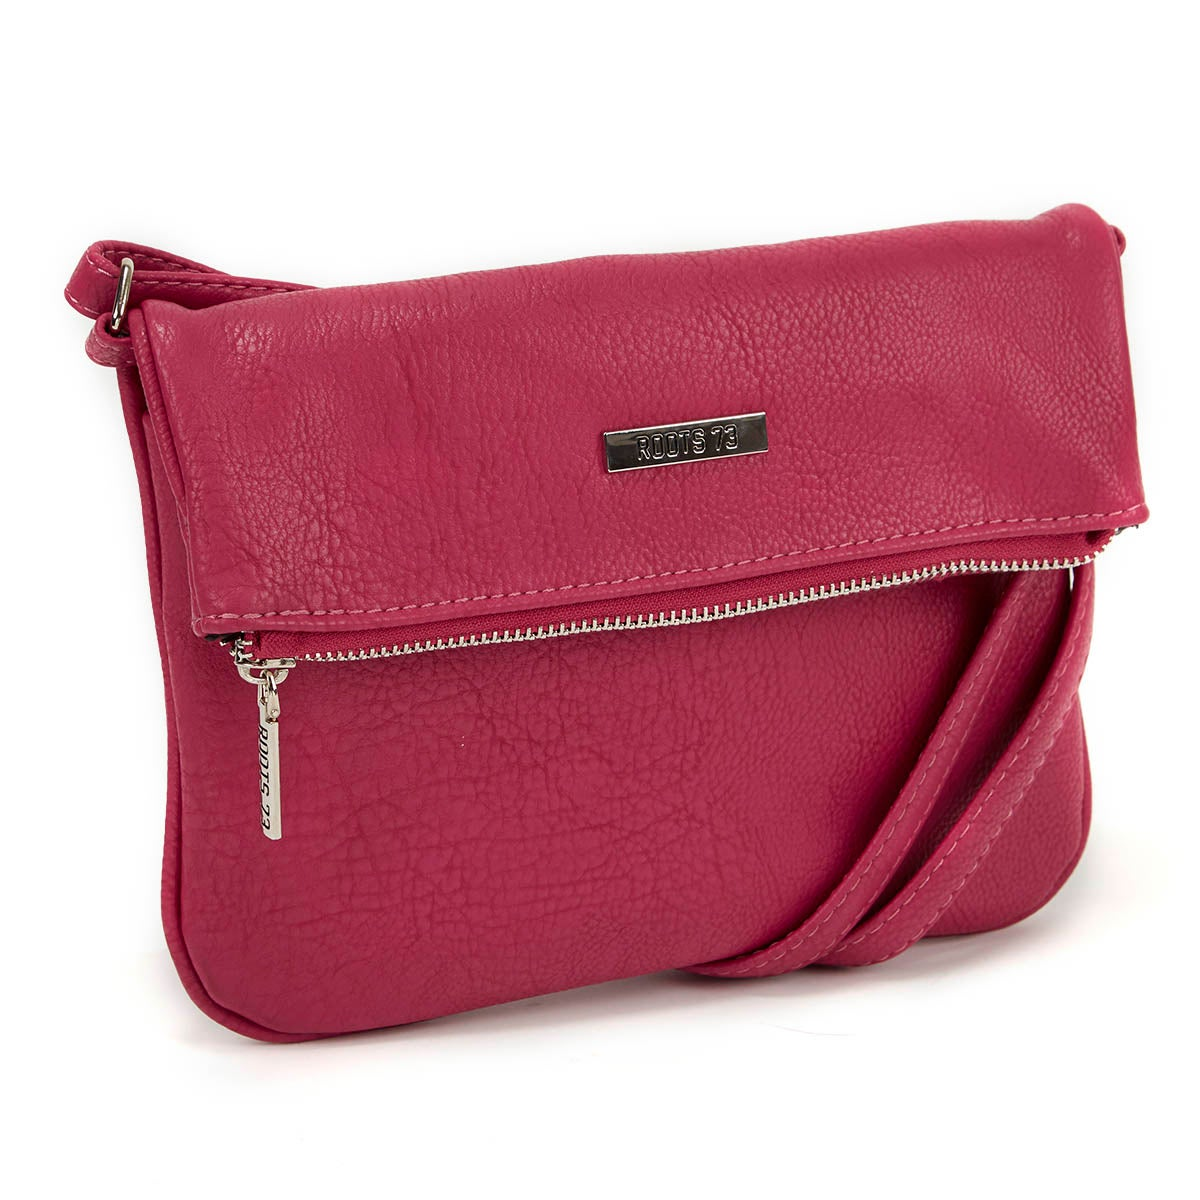 Lds fuchsia fold down cross body bag